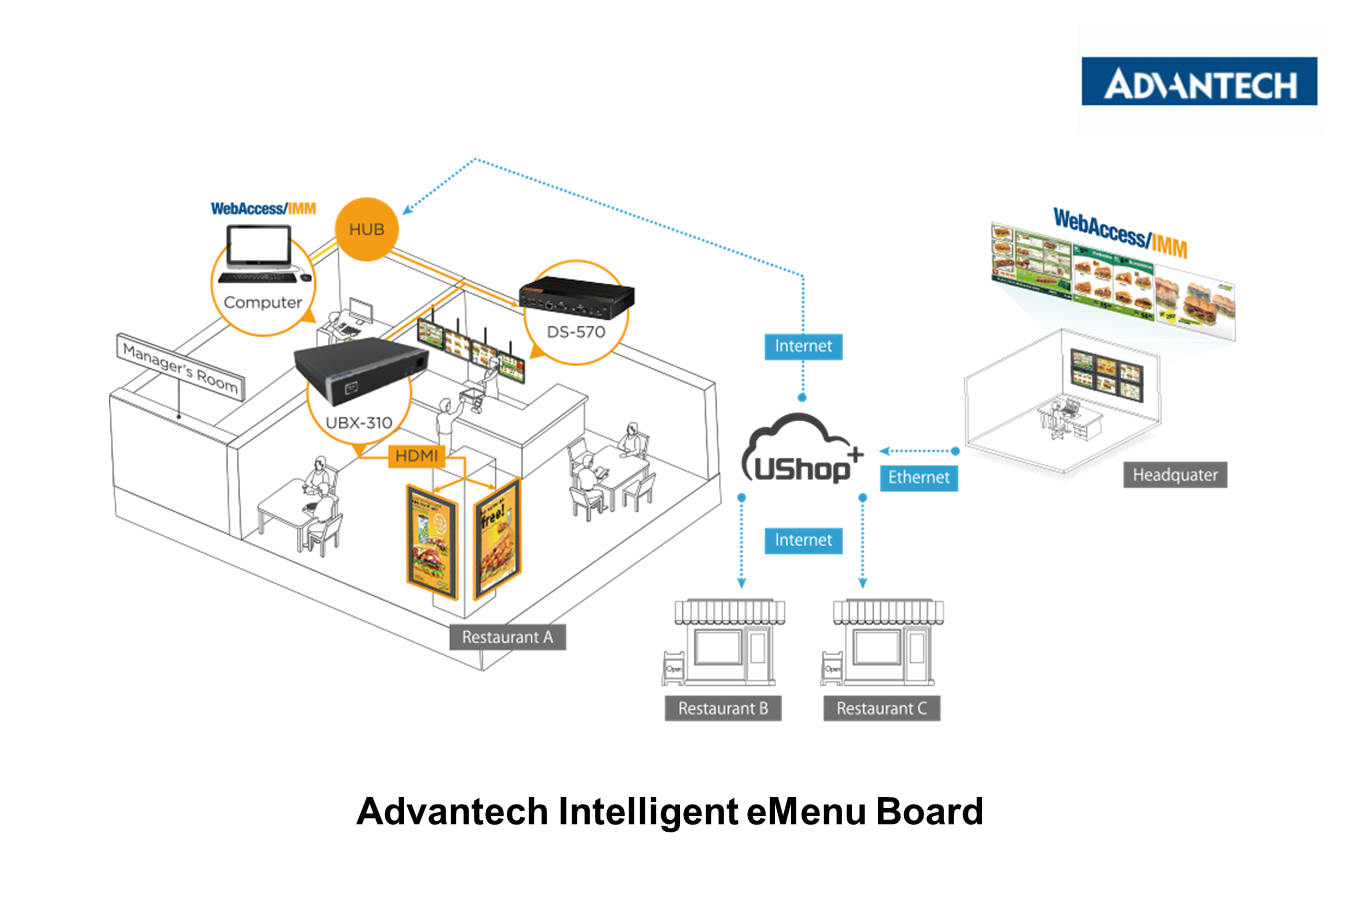 Advantech Intelligent eMenu Board